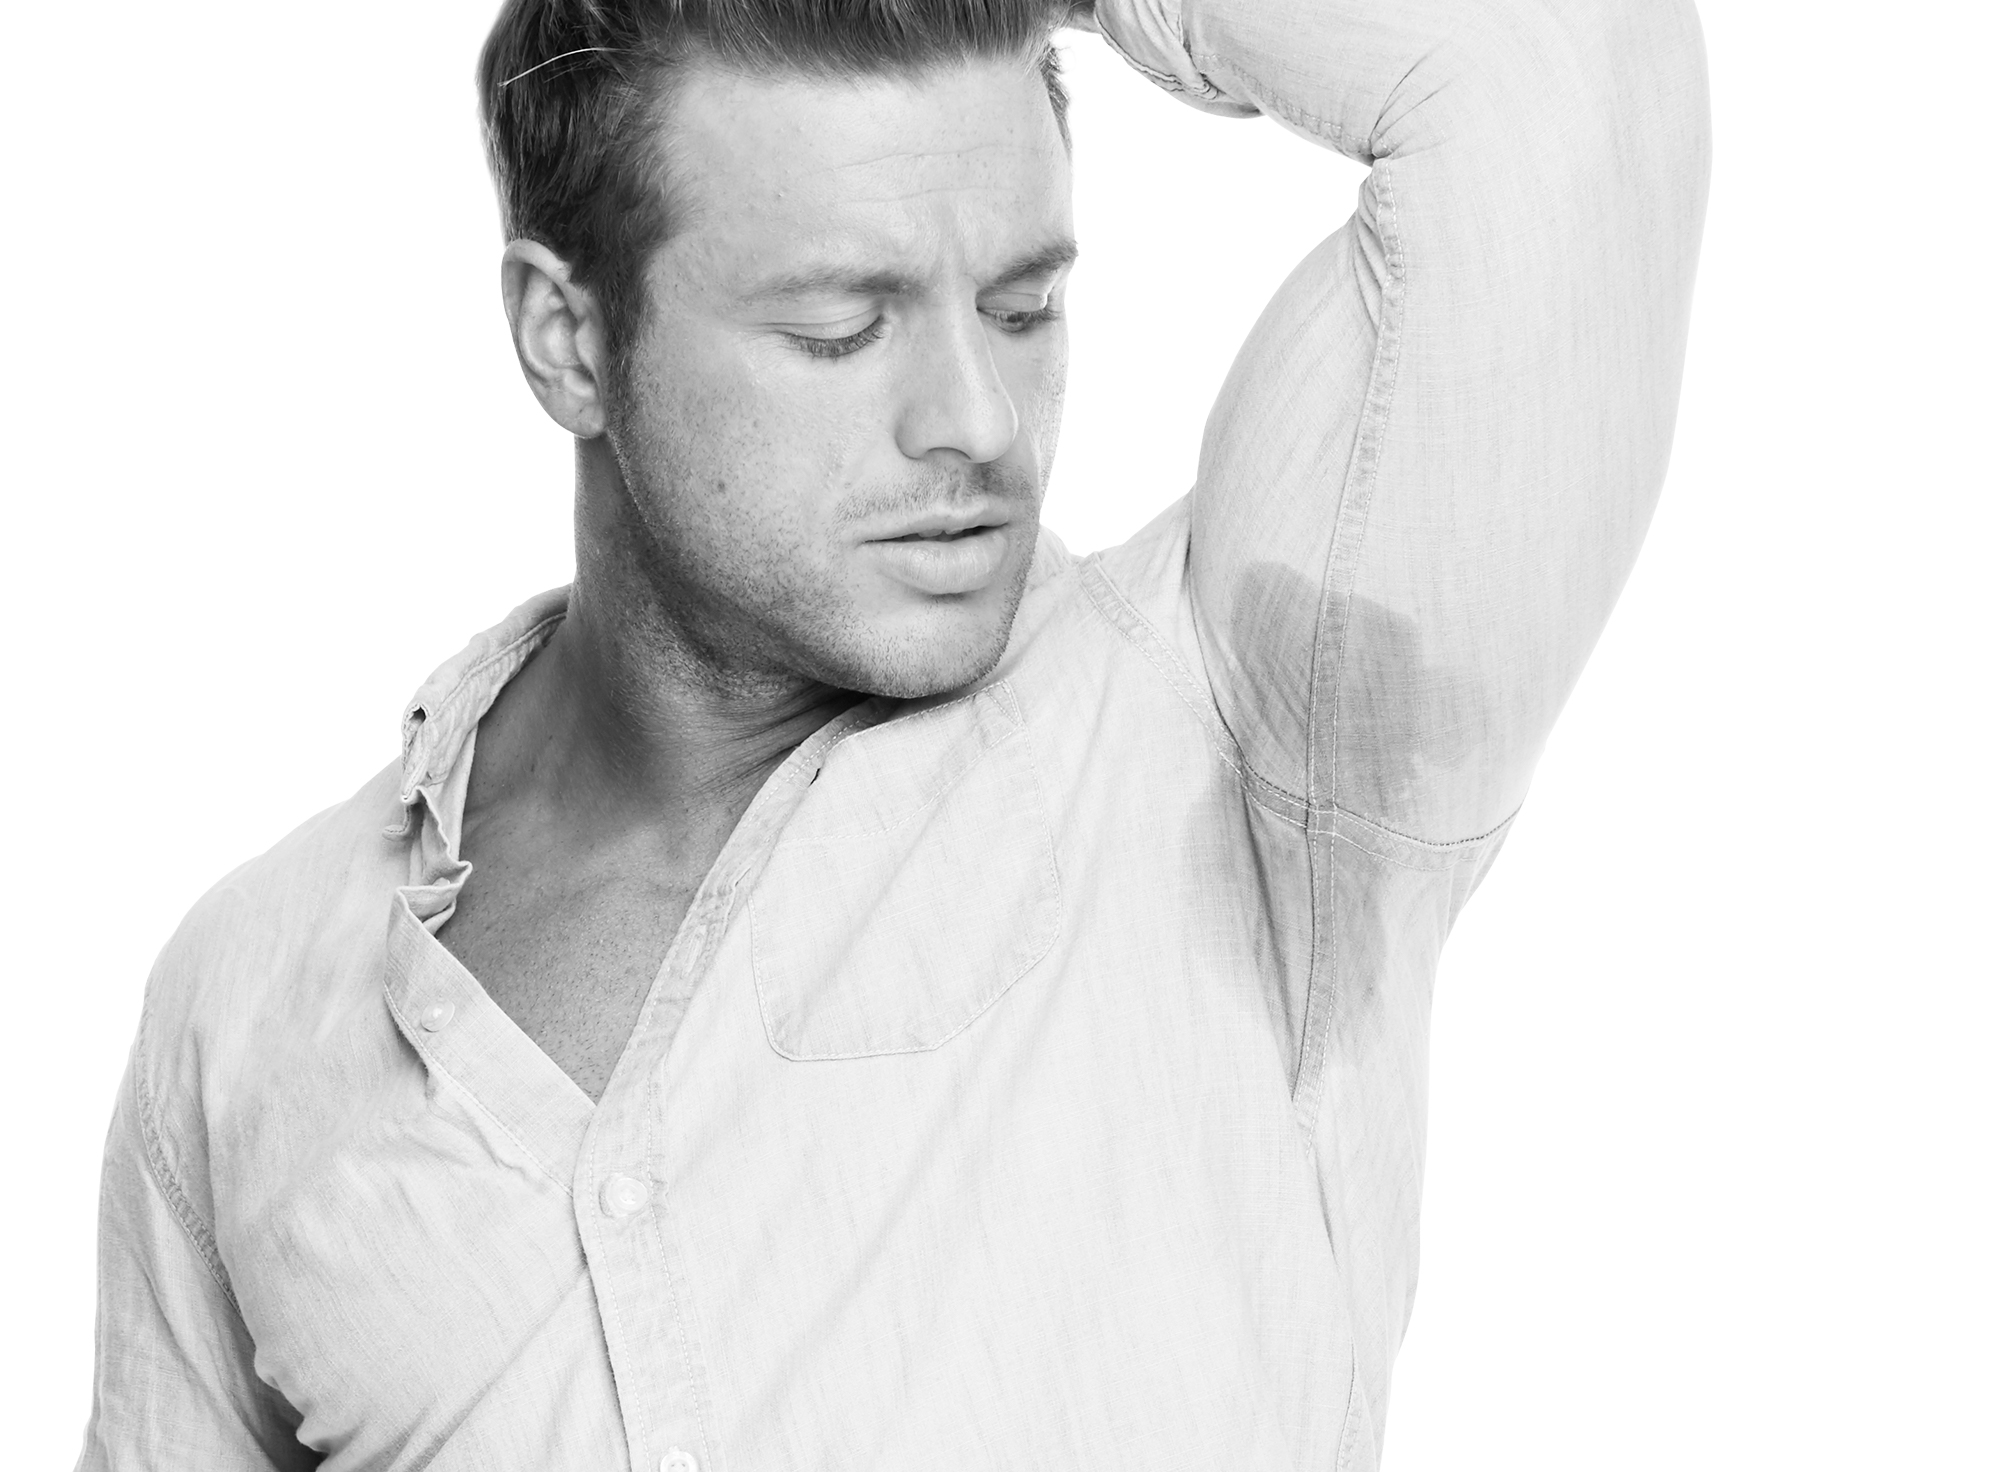 About Hyperhidrosis